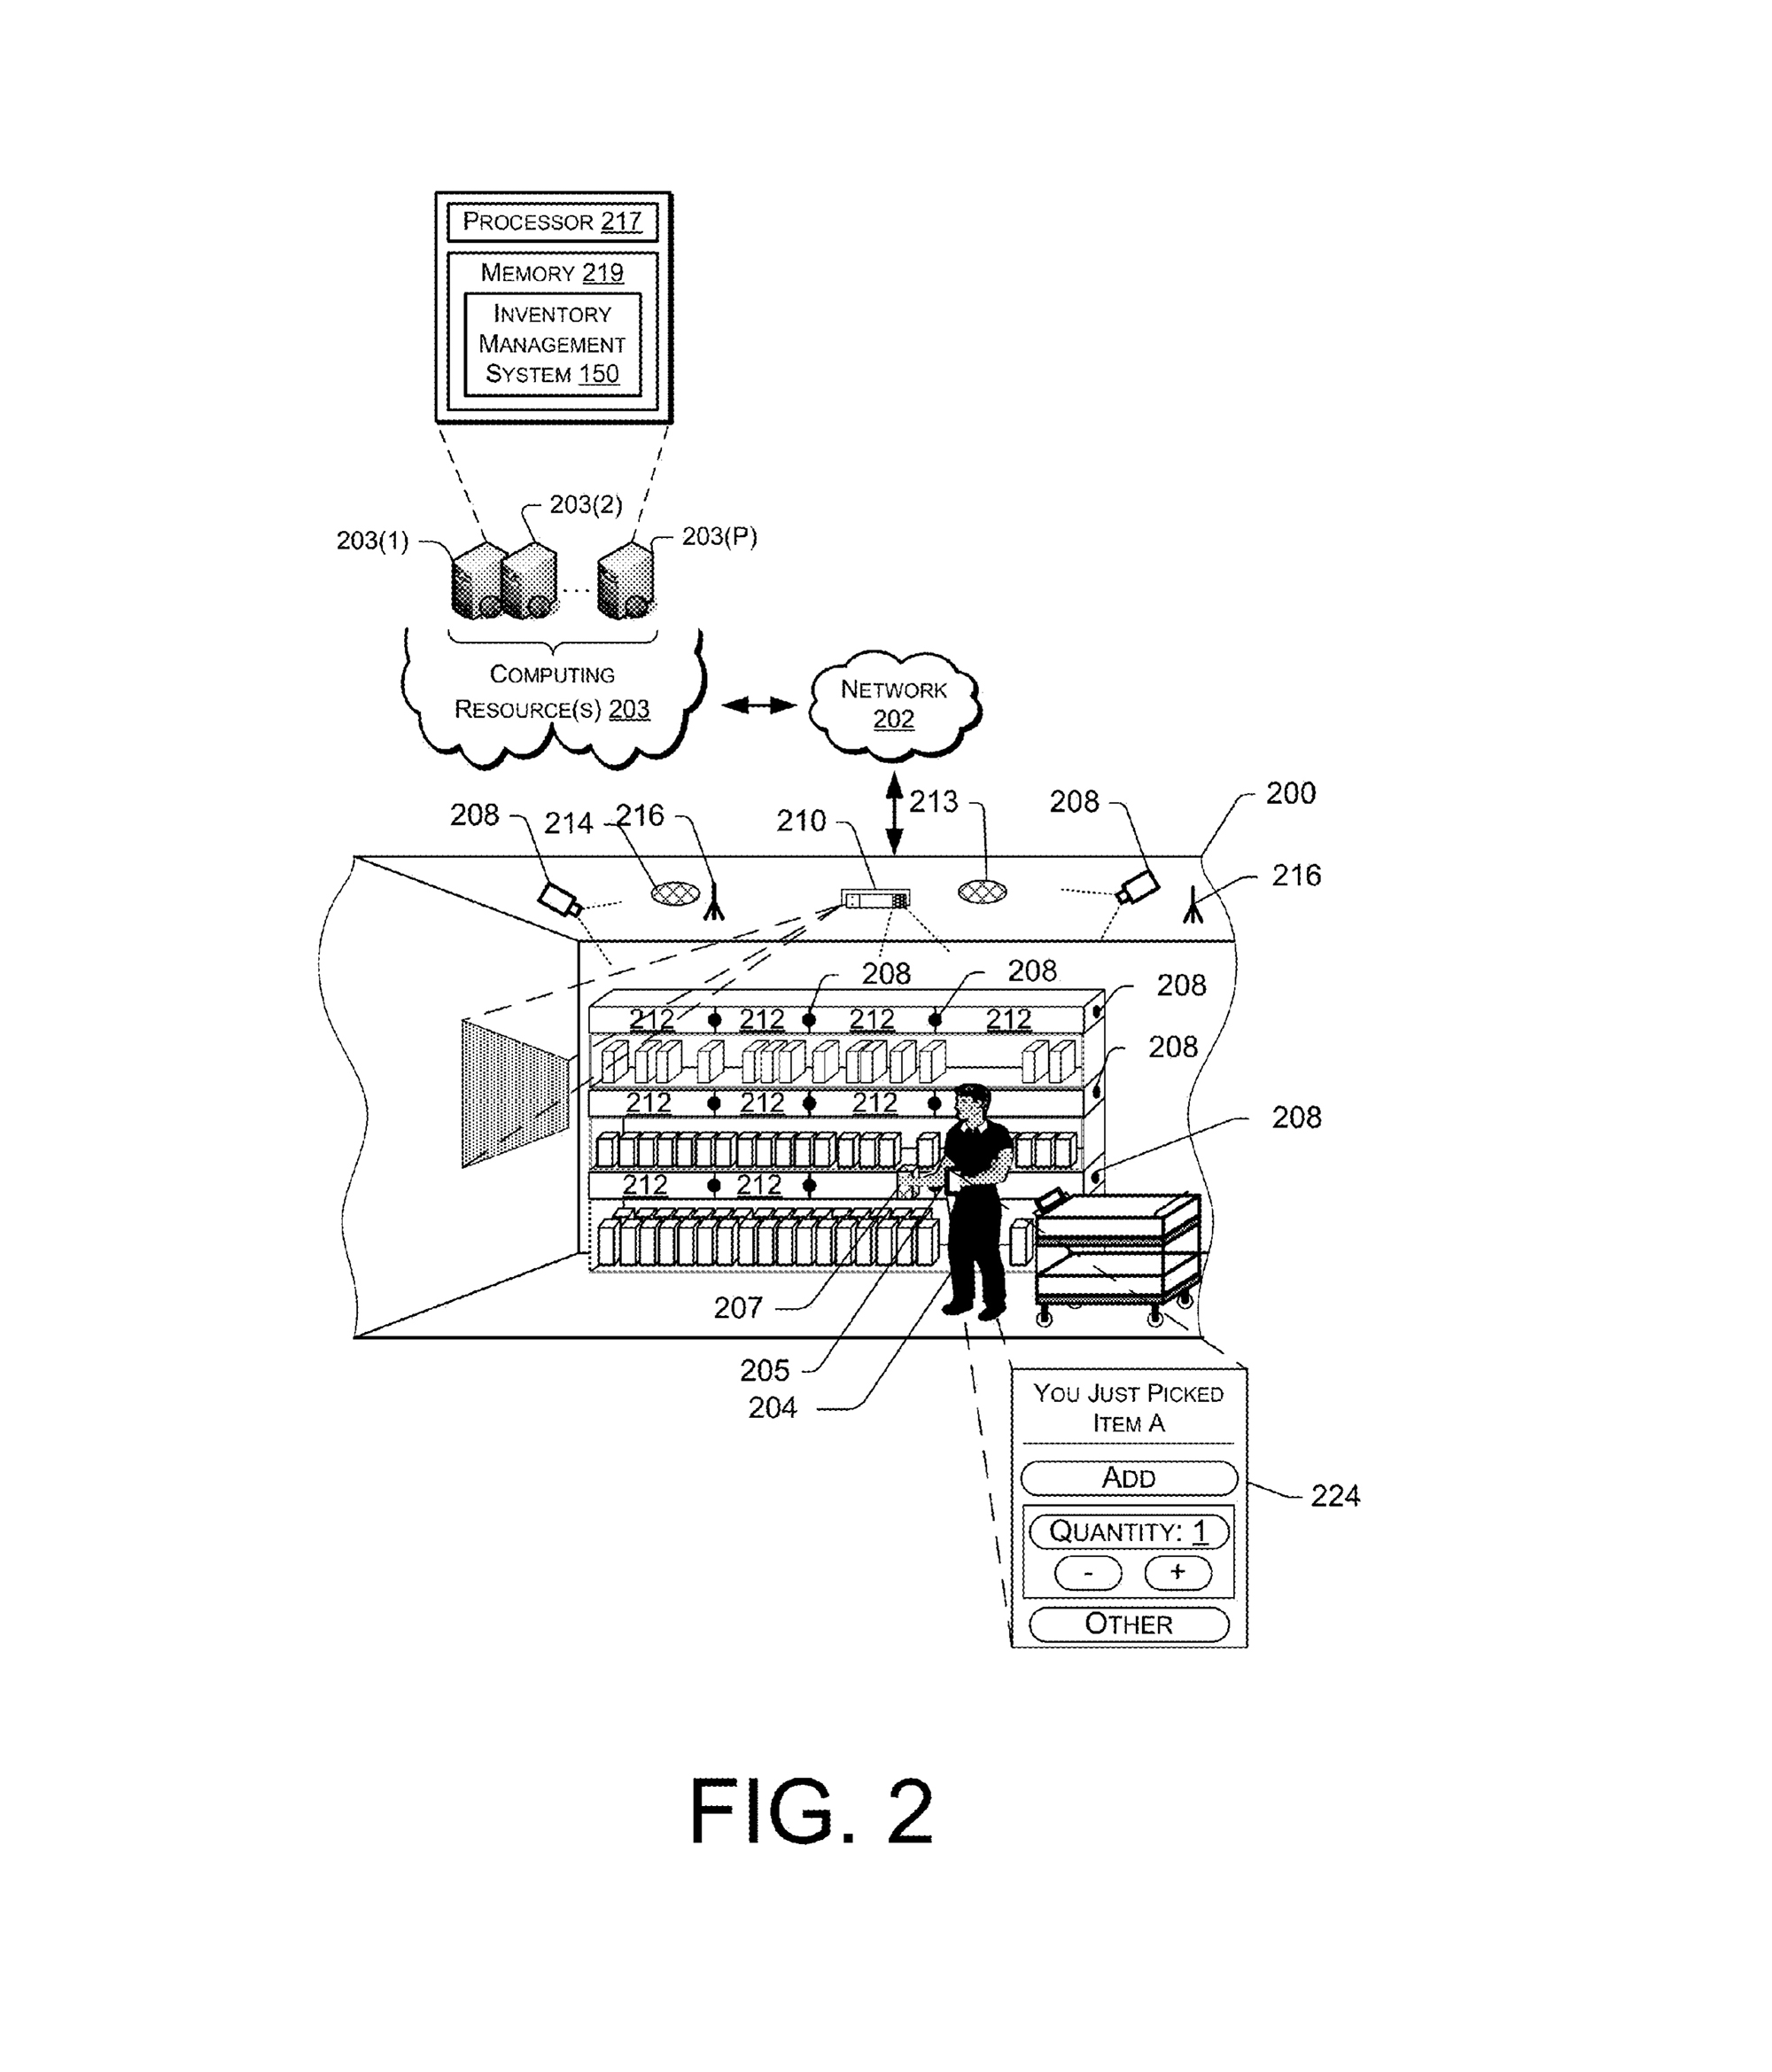 Amazon Urbanism Patents And The Totalizing World Of Big Tech Diagram A Network Architecture In Multistory Building Patent Drawing For Transitioning Items From Materials Handling Facility Pay By Selfie